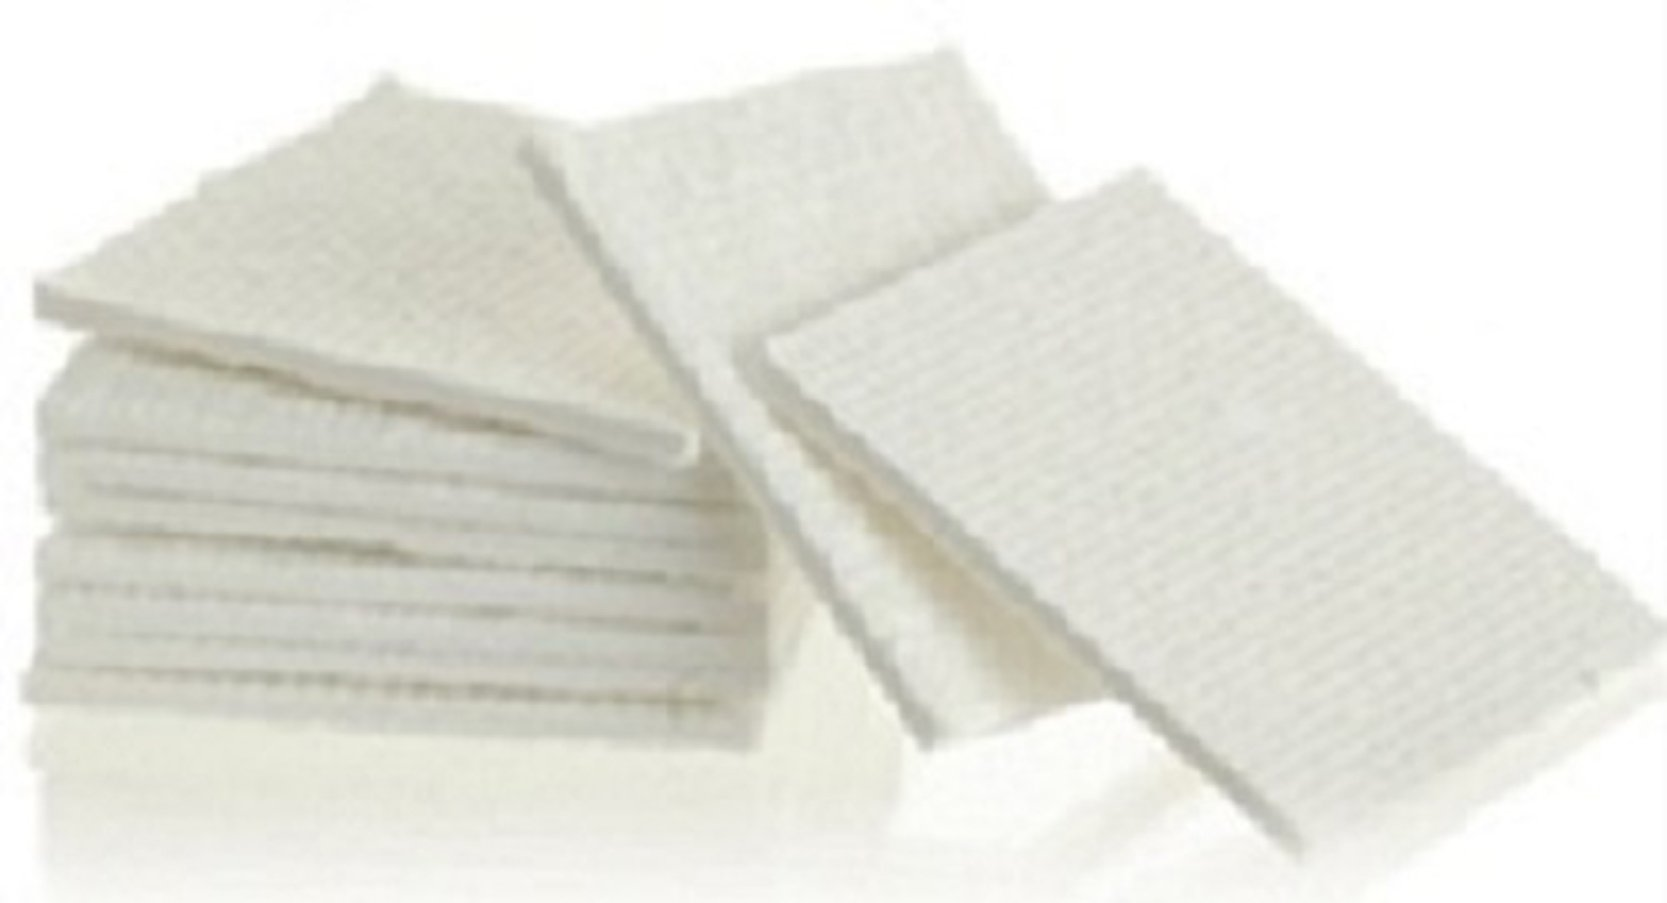 Travel Fan Diffuser Replacement Refill Pads 1.5'' x 1.5'' 20/pk Comes with 5ml Peppermint Essential Oil